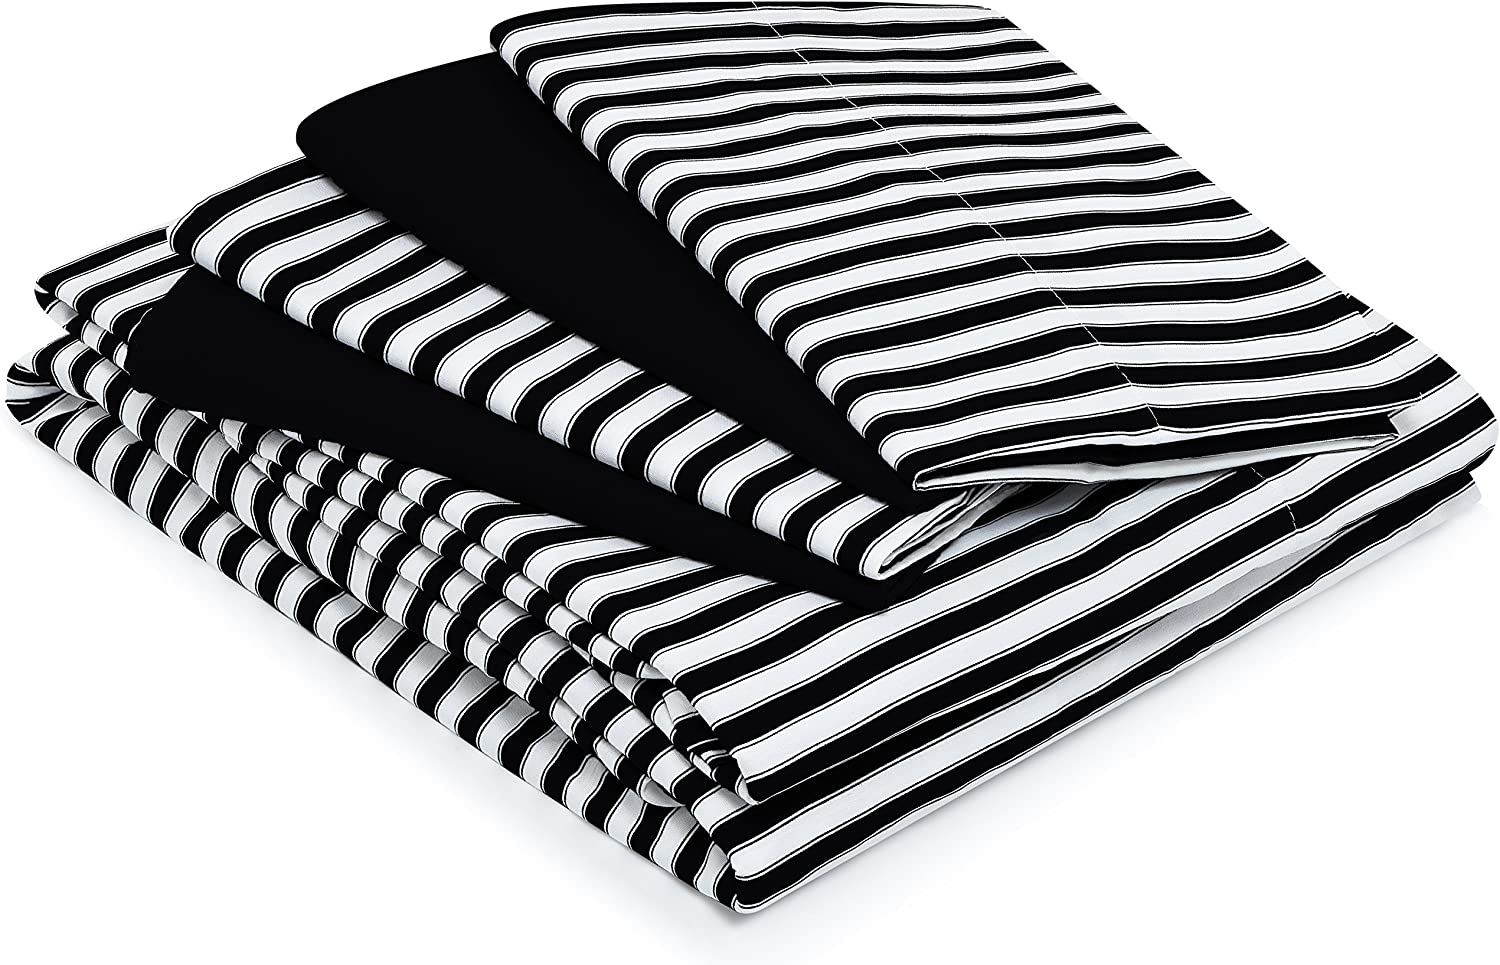 Cosy House Collection Striped New products, world's highest quality popular! Bed Sheets Super Luxury Ranking TOP19 Hot - Soft